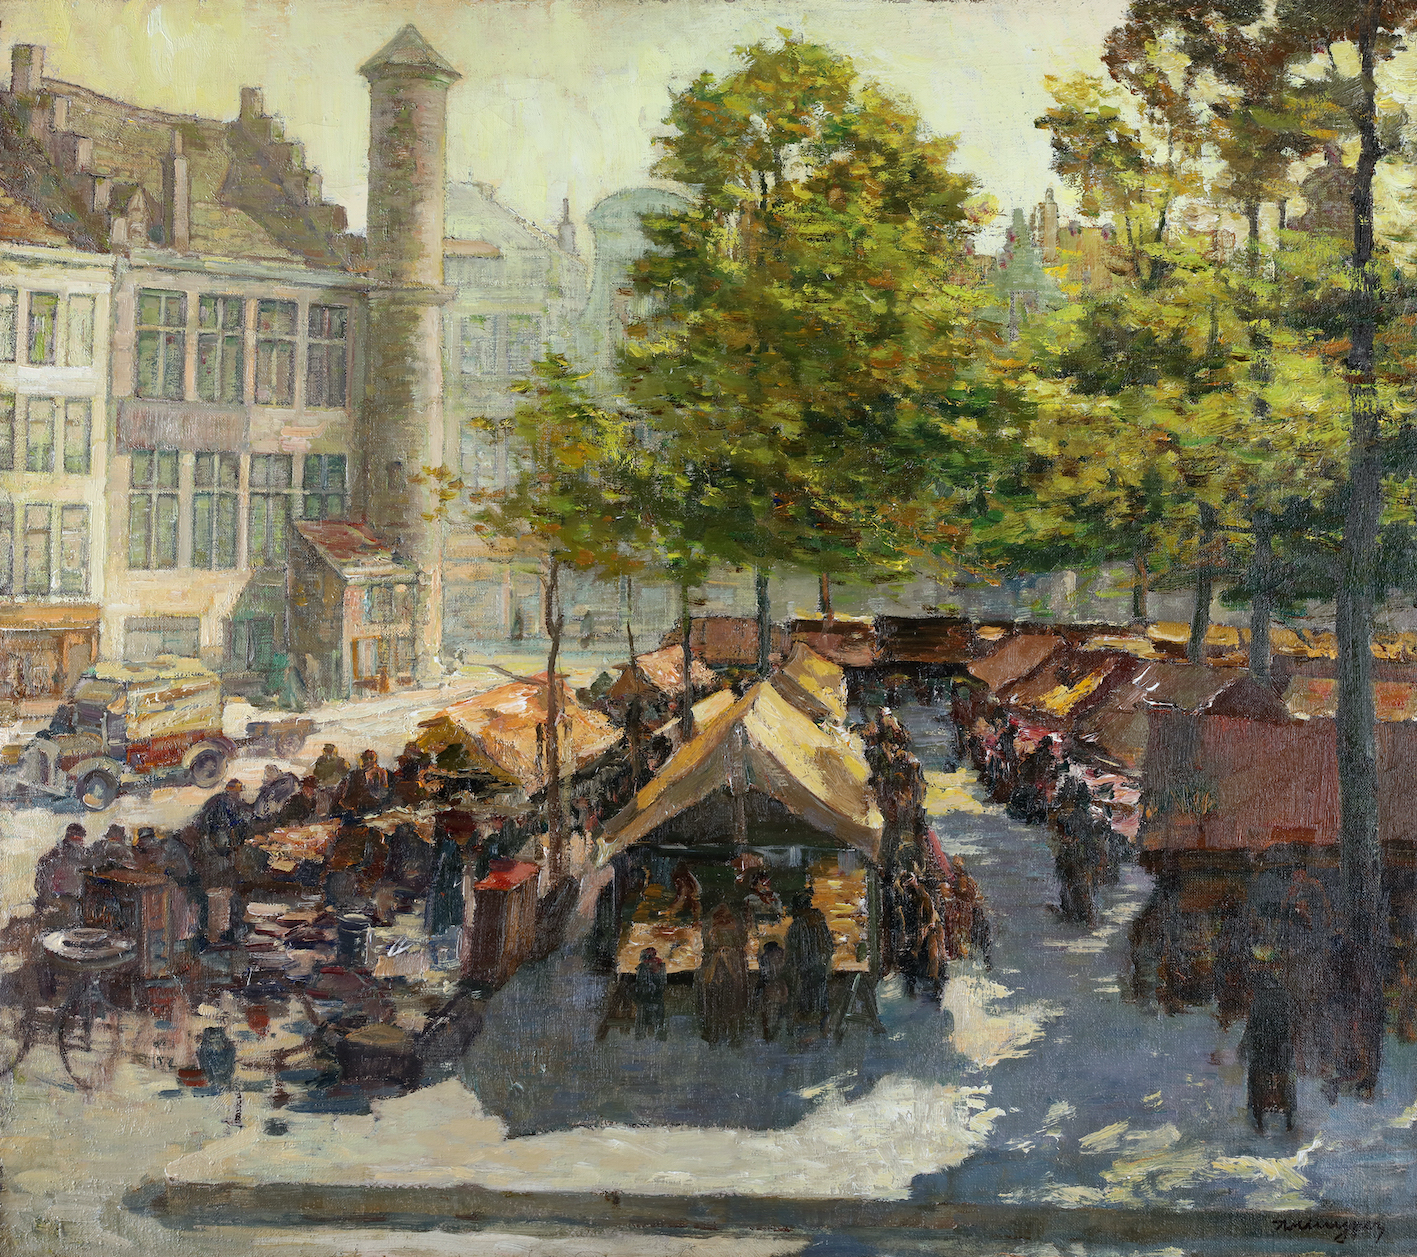 Activities on the Vrijdagsmarkt in Ghent with 'Het Toreken,' on the left